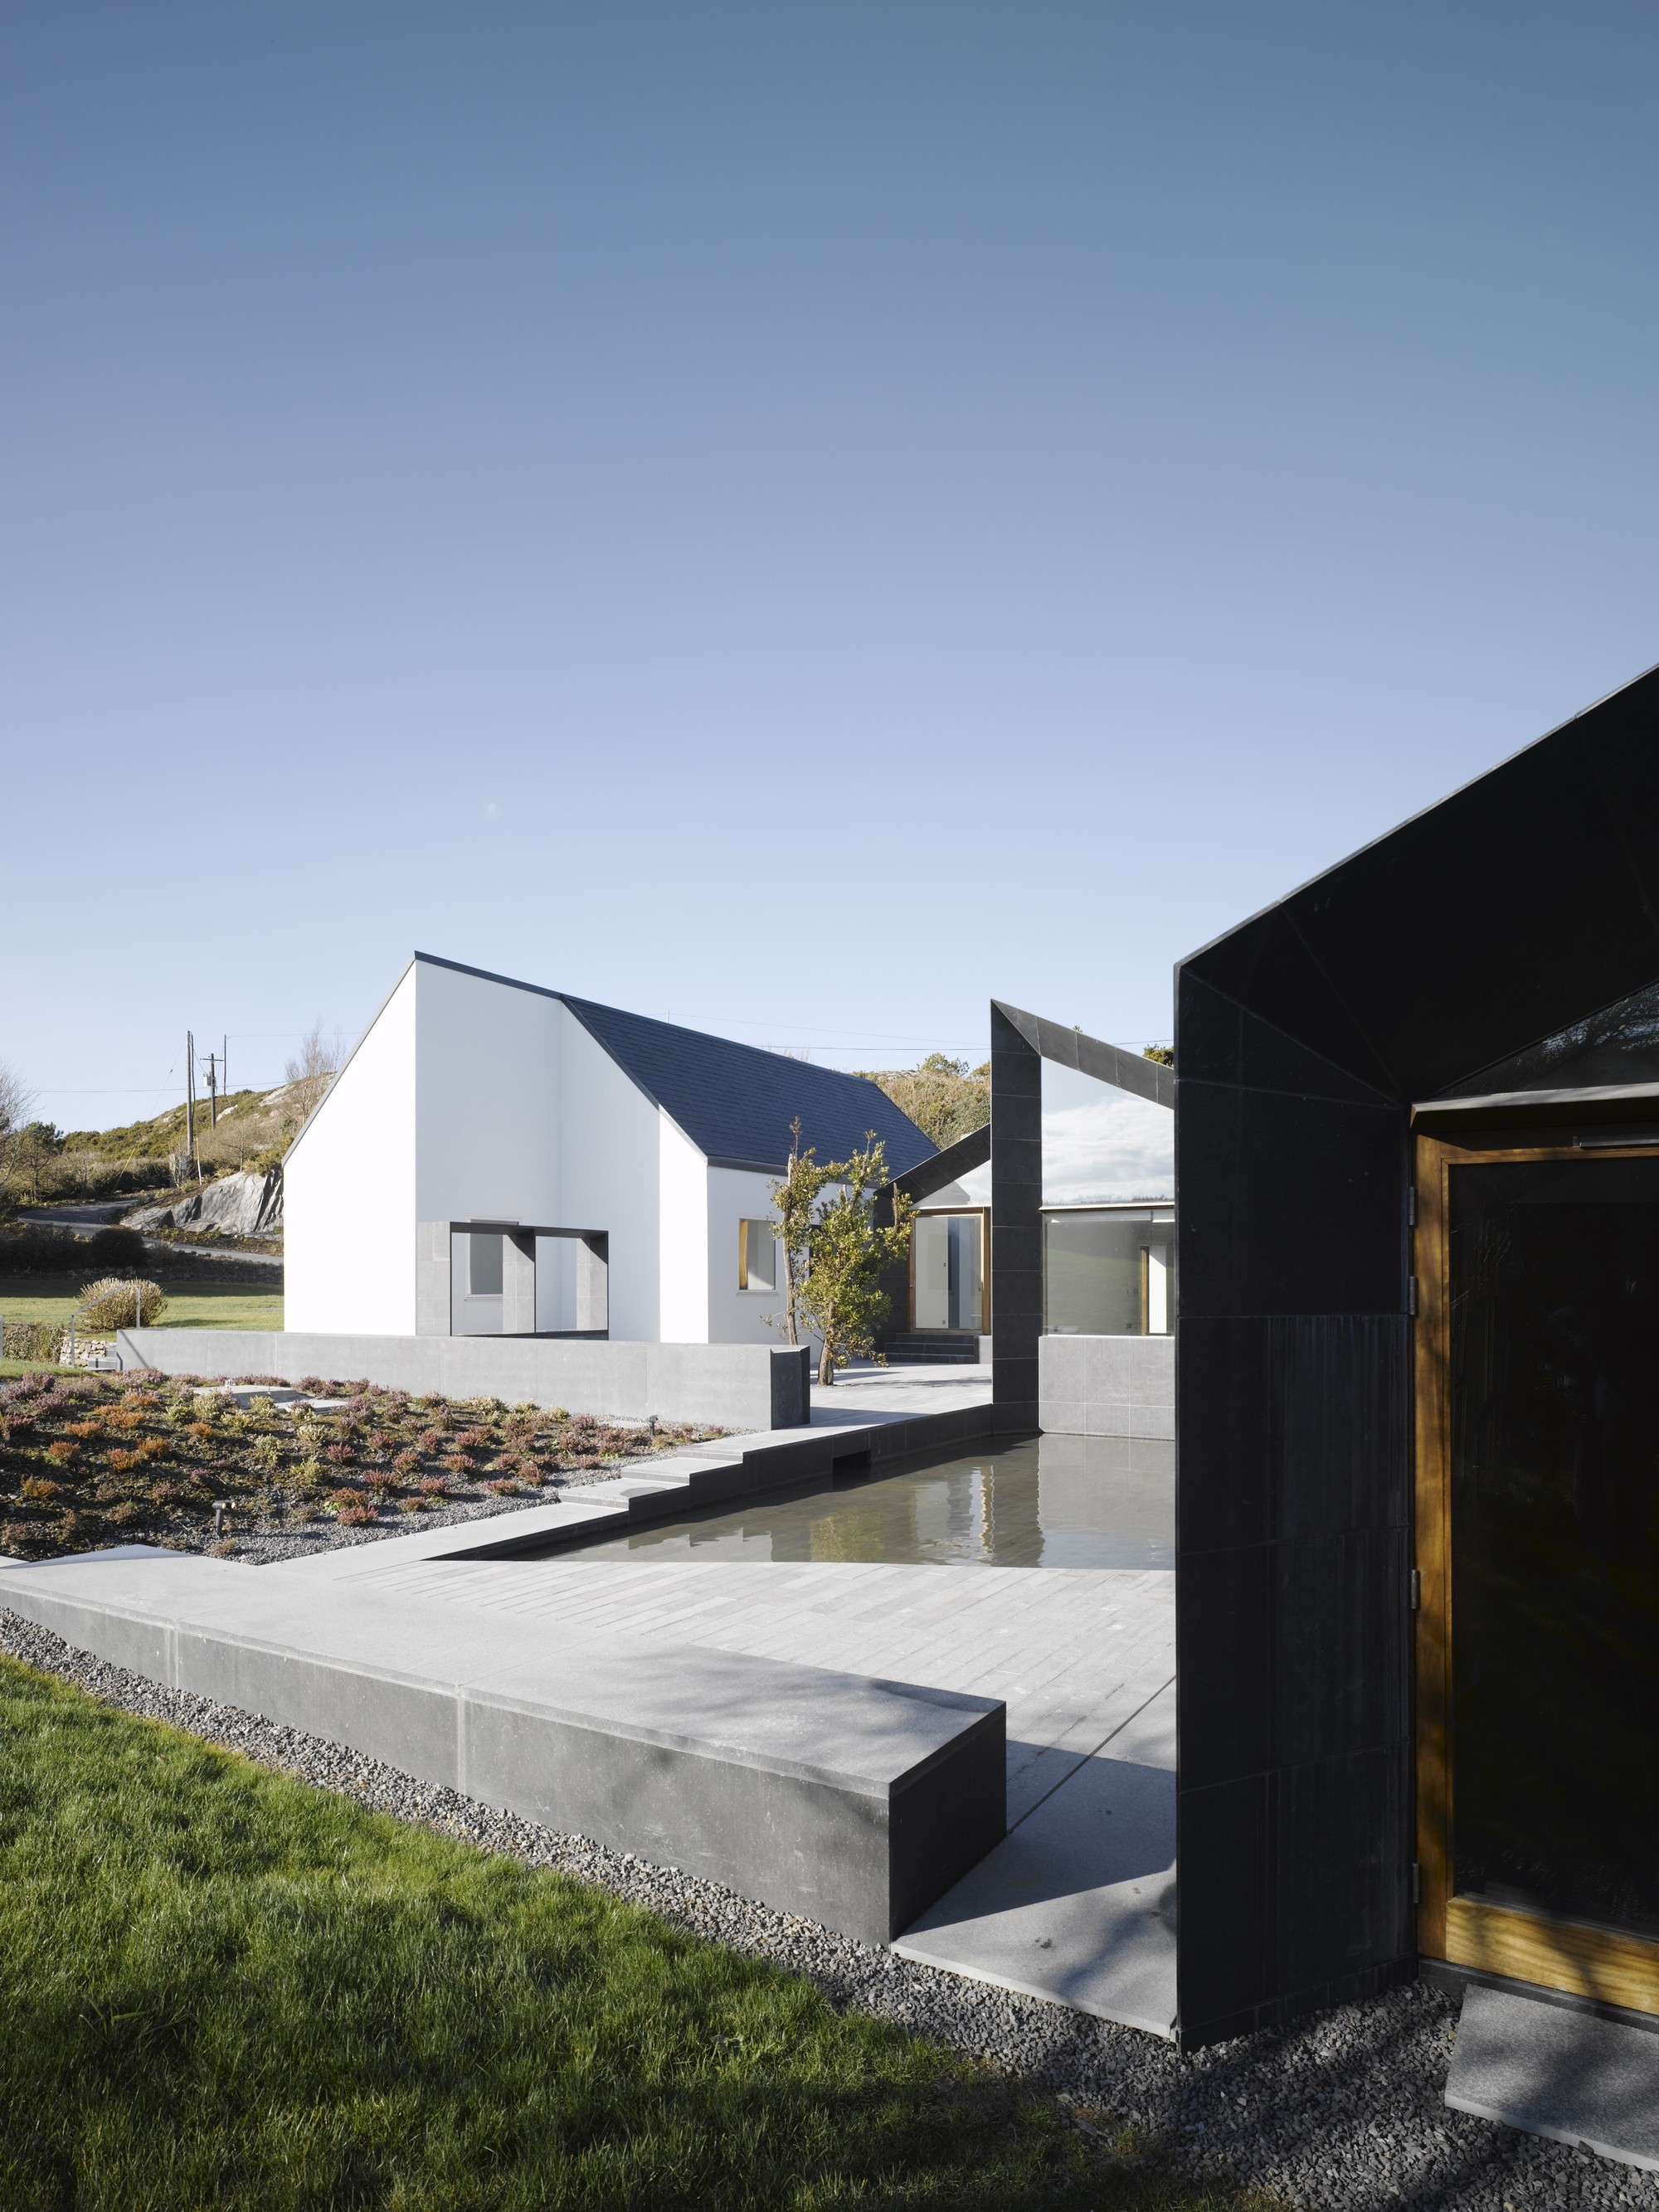 Gallery of House at Goleen  Nall McLaughlin Architects  9